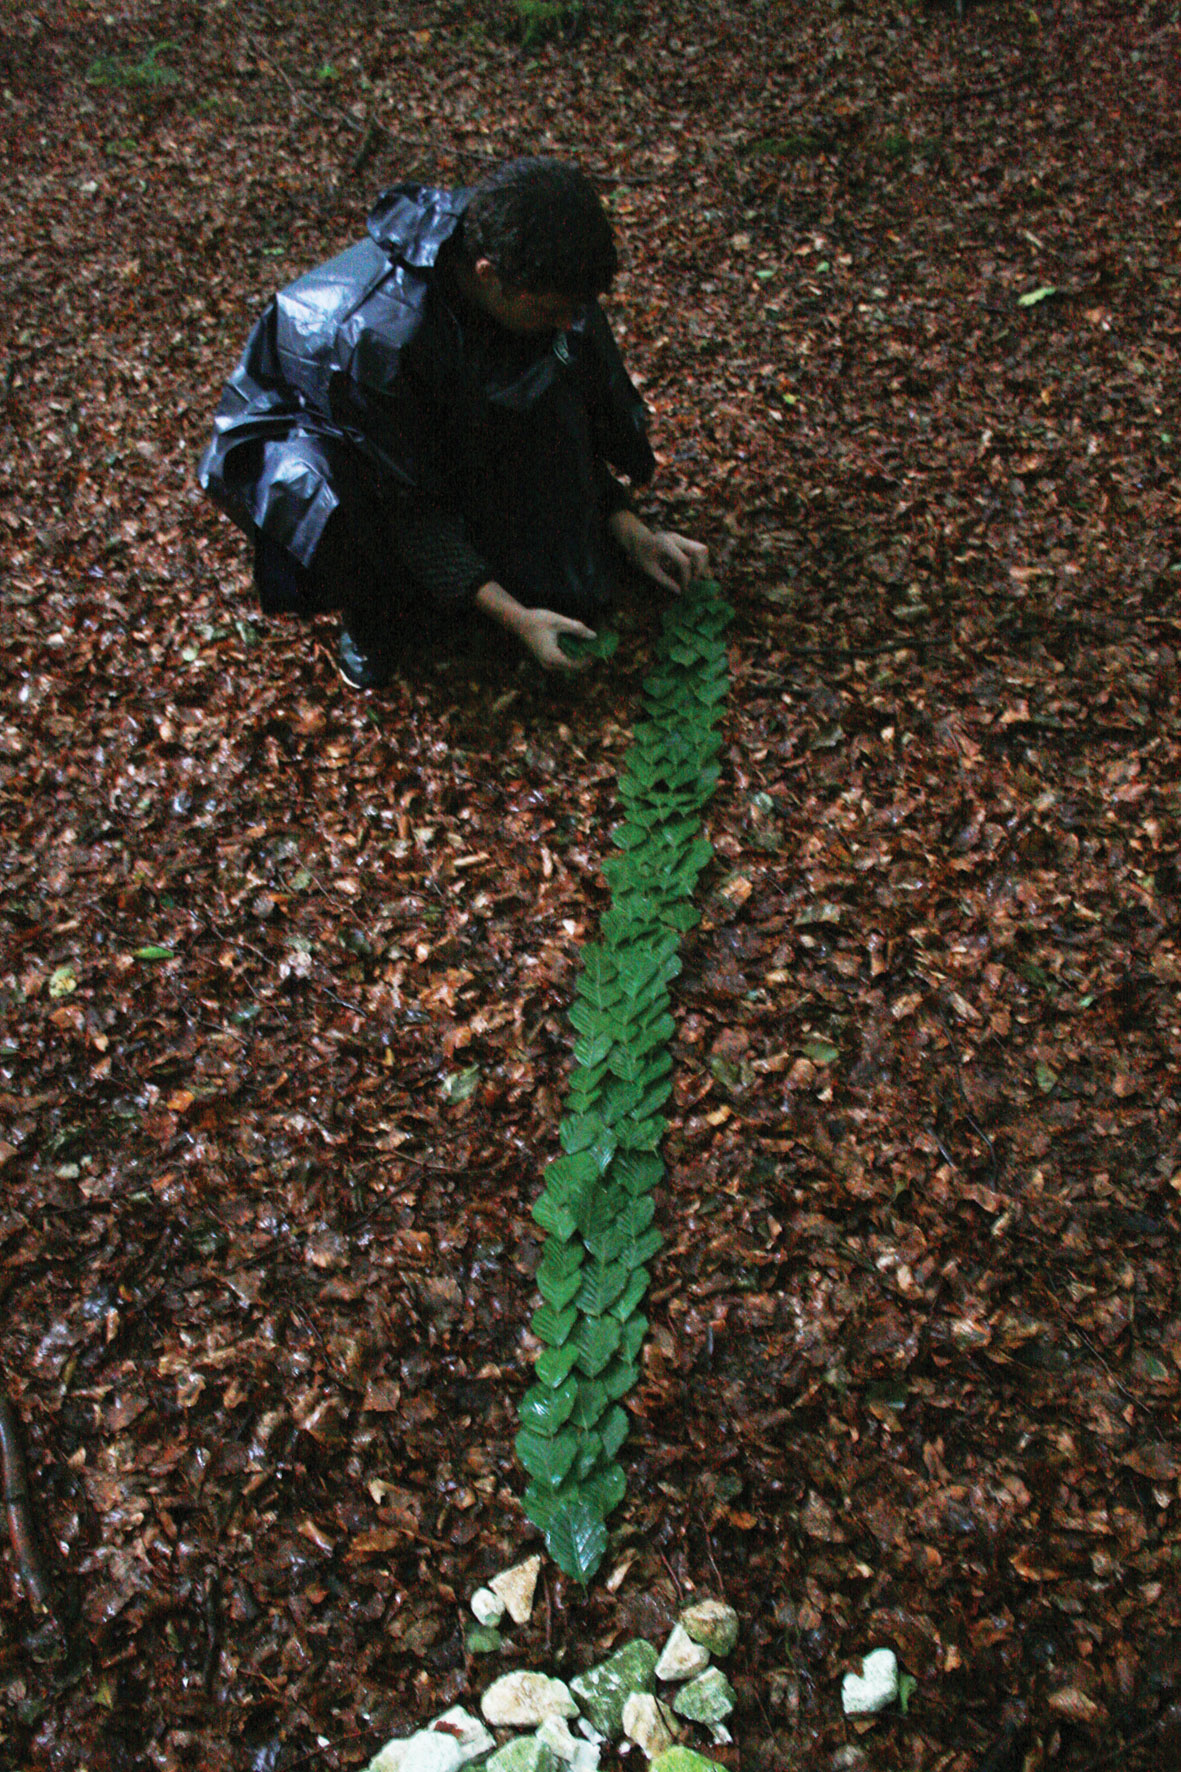 Twenty minute task to create a line of green beech leaves on the brown forest floor